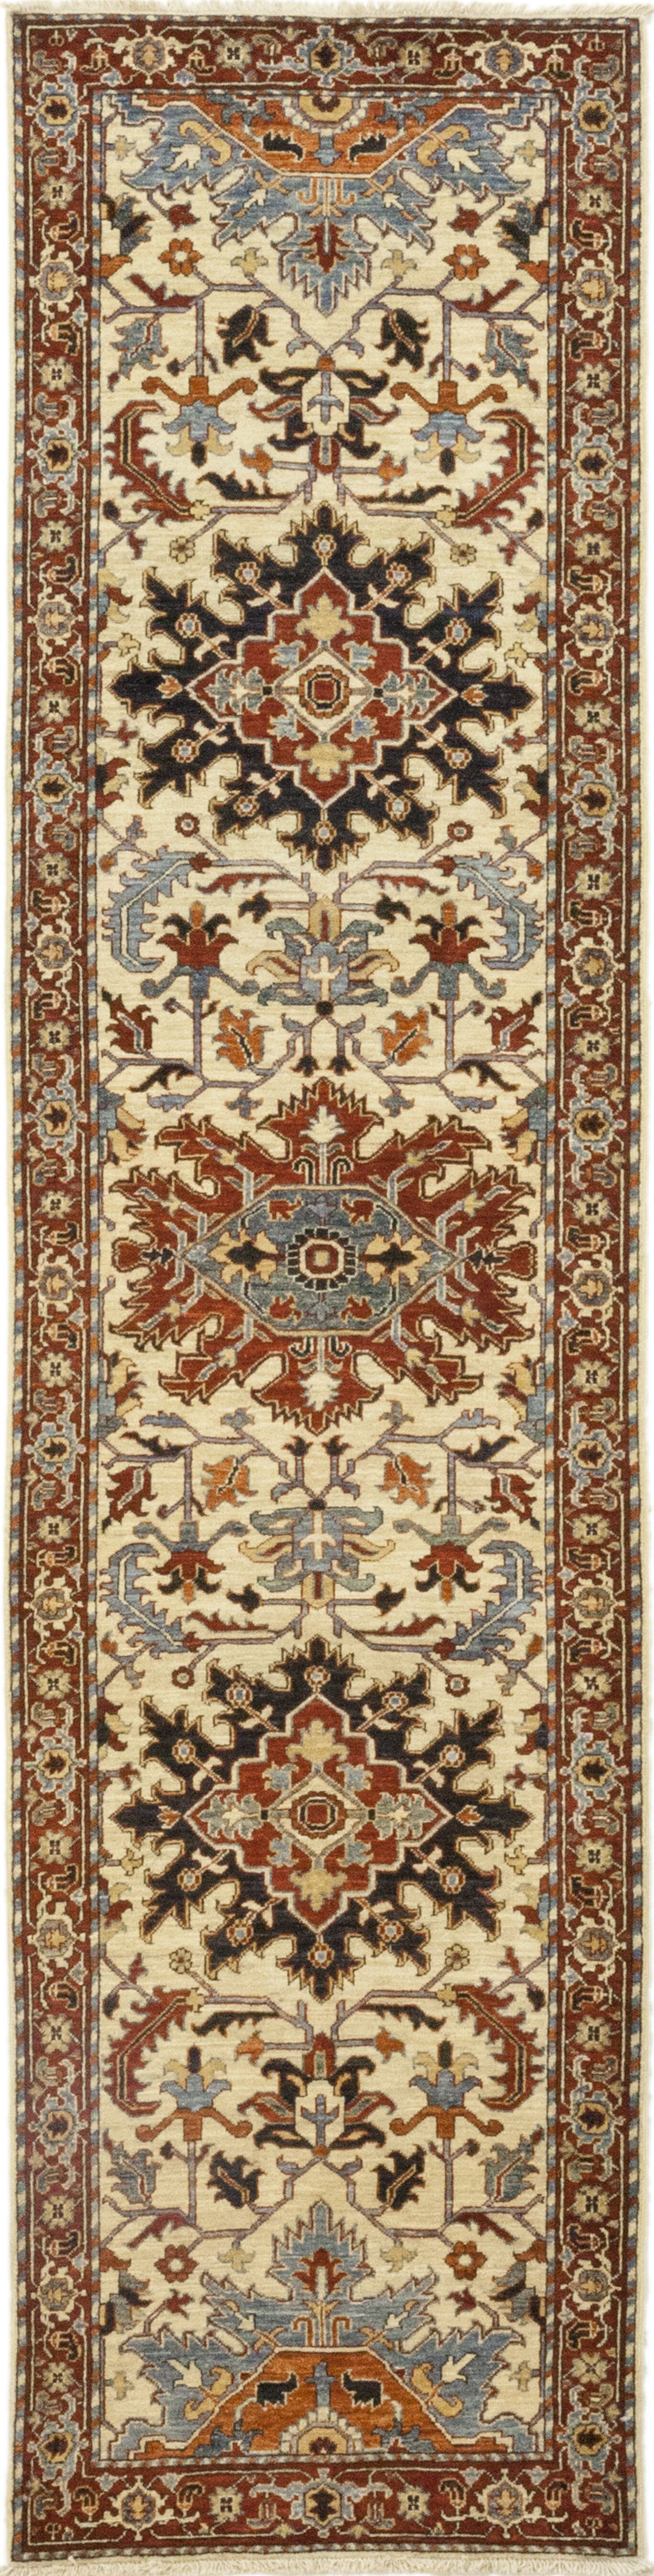 One-of-a-Kind Heimbach Hand-Knotted Wool Beige/Red Indoor Area Rug